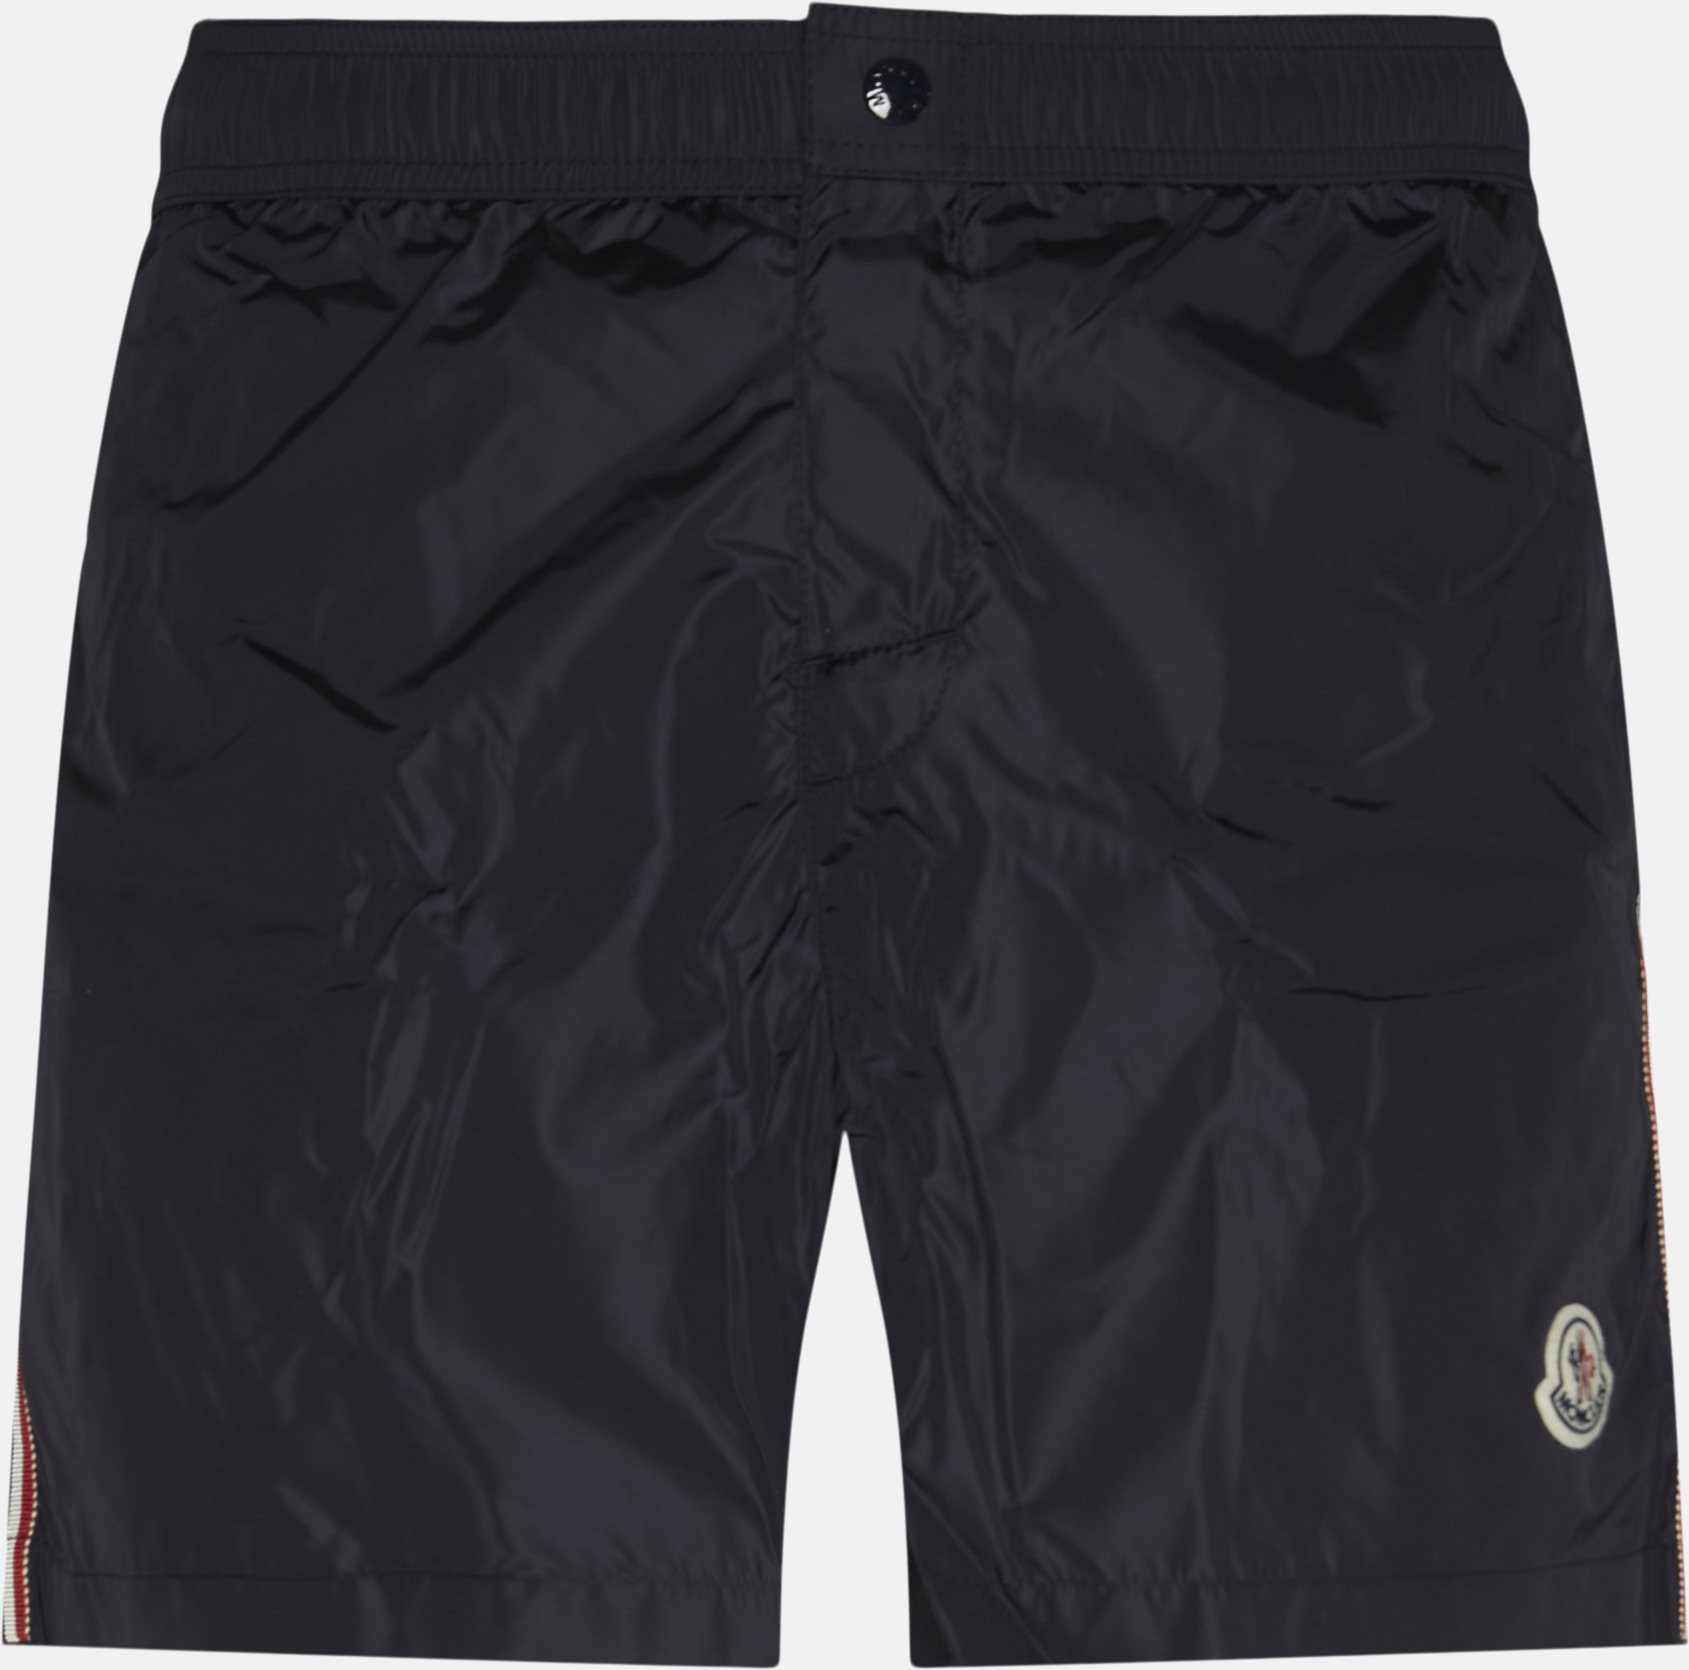 Badeshorts - Shorts - Regular - Blå